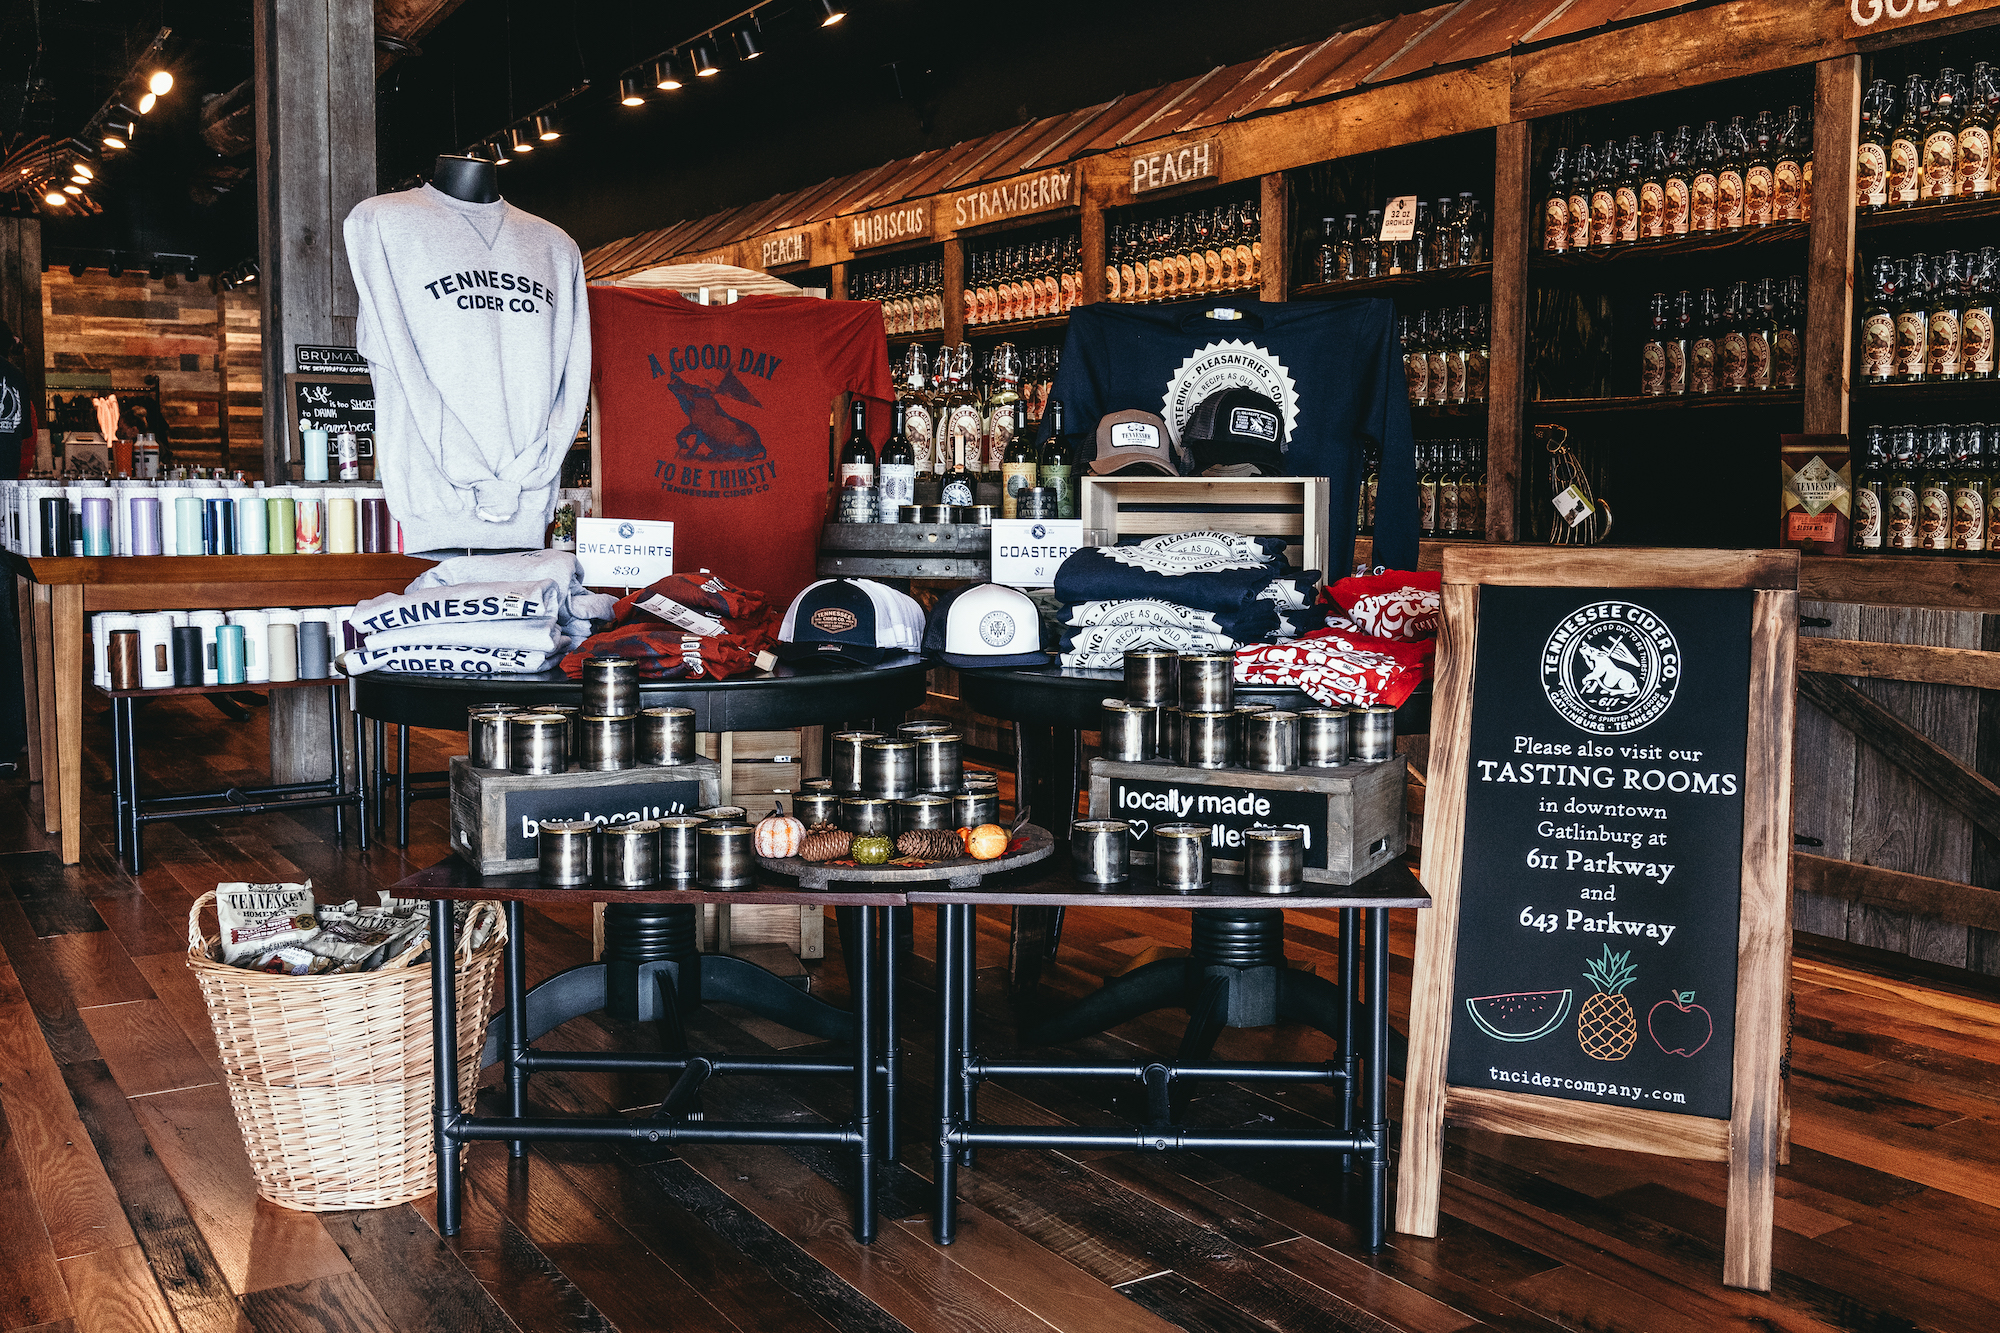 Products on sale in Tennessee Cider Company - Tennessee Cider Company offers many products other than cider for your enjoyment in Gatlinburg and Sevierville Tennessee